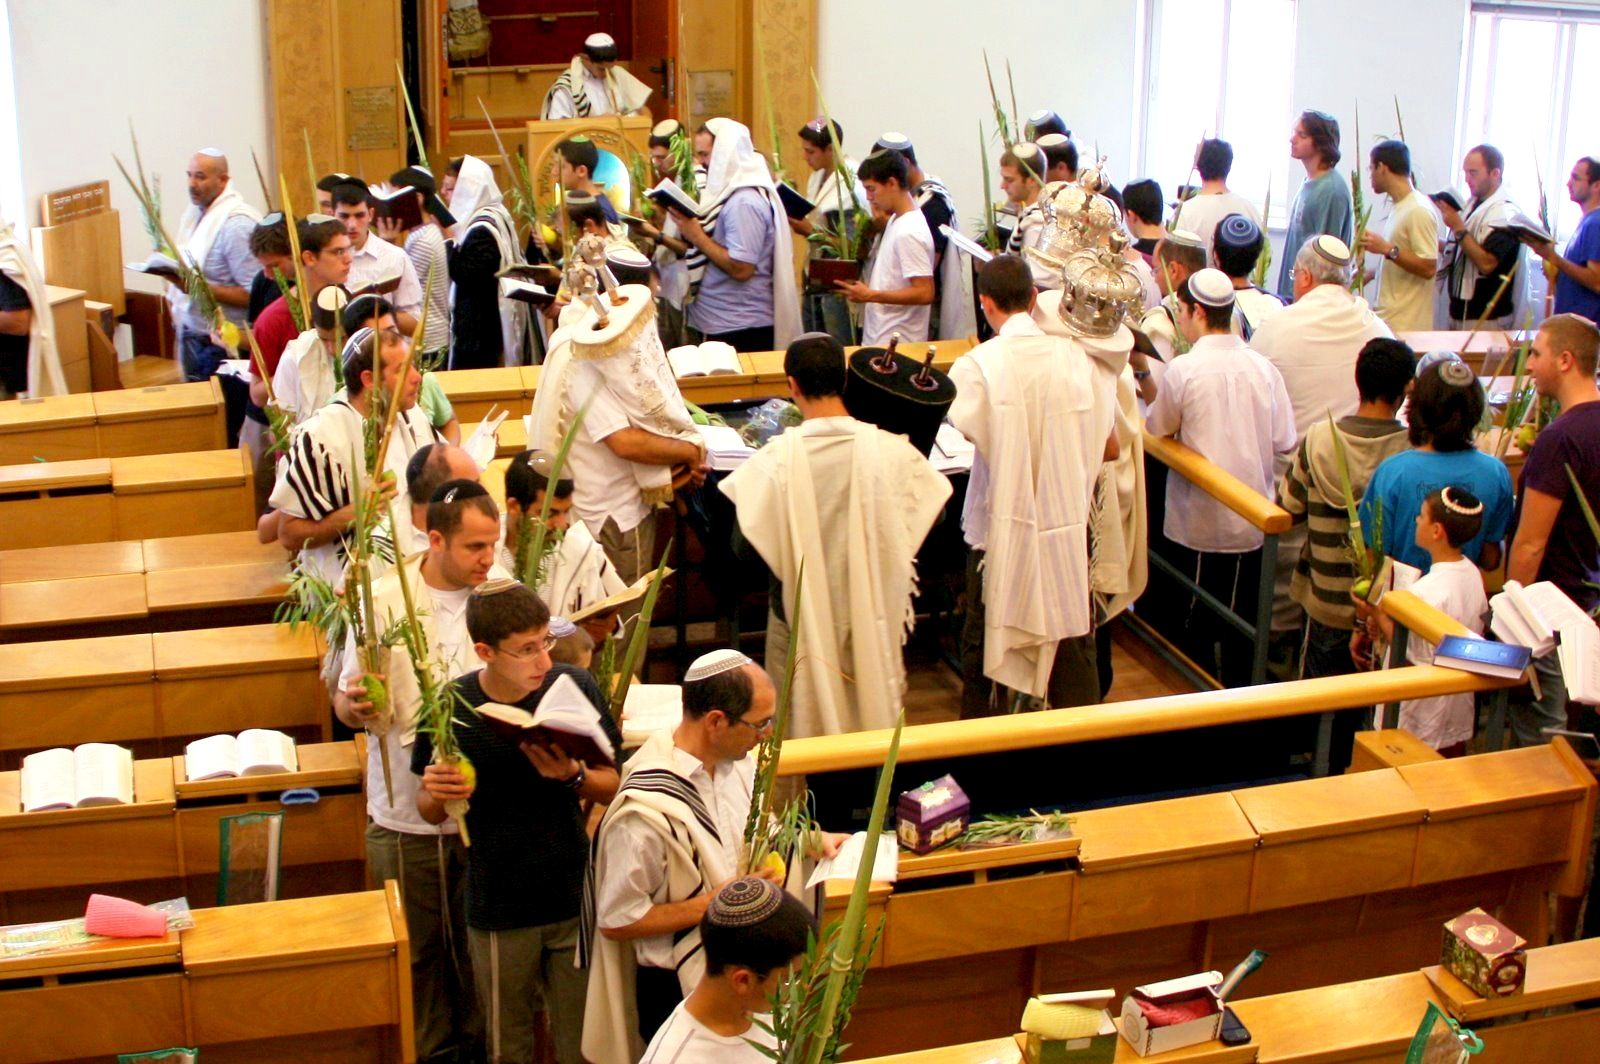 On Hoshana Rabbah, Jewish men encircle the bimah (table where the Torah is read) with palm, willow, myrtle and citron in hand in memory of the circles once made around the altar on the Temple Mount.